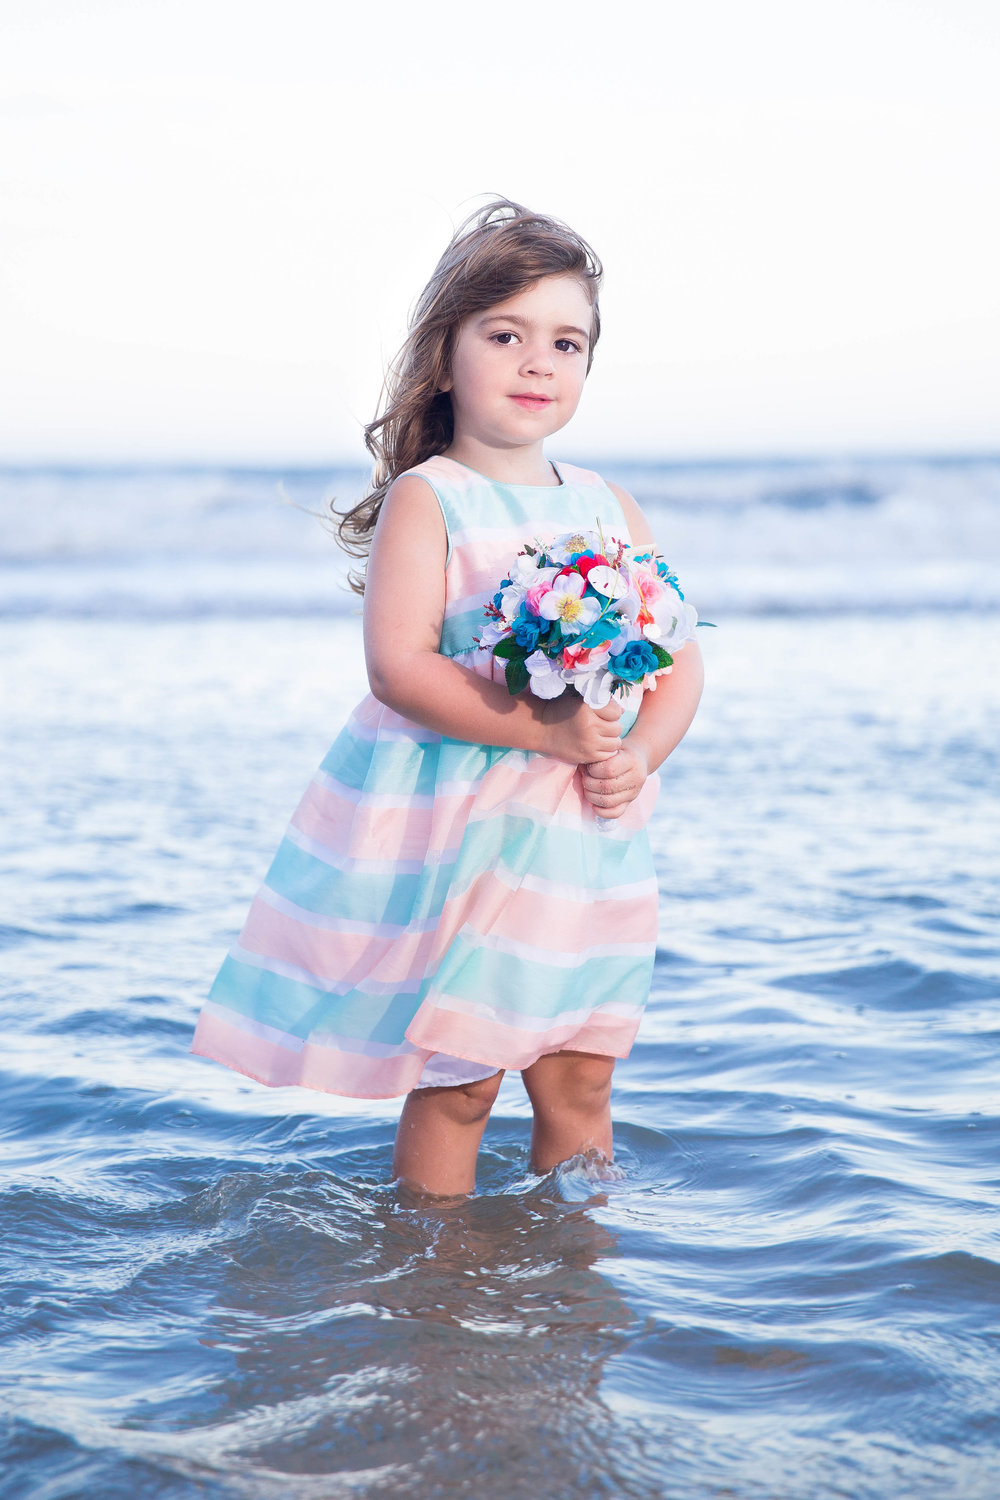 Myrtle beach family photographer ramona nicolae photography beach photos-4.jpg